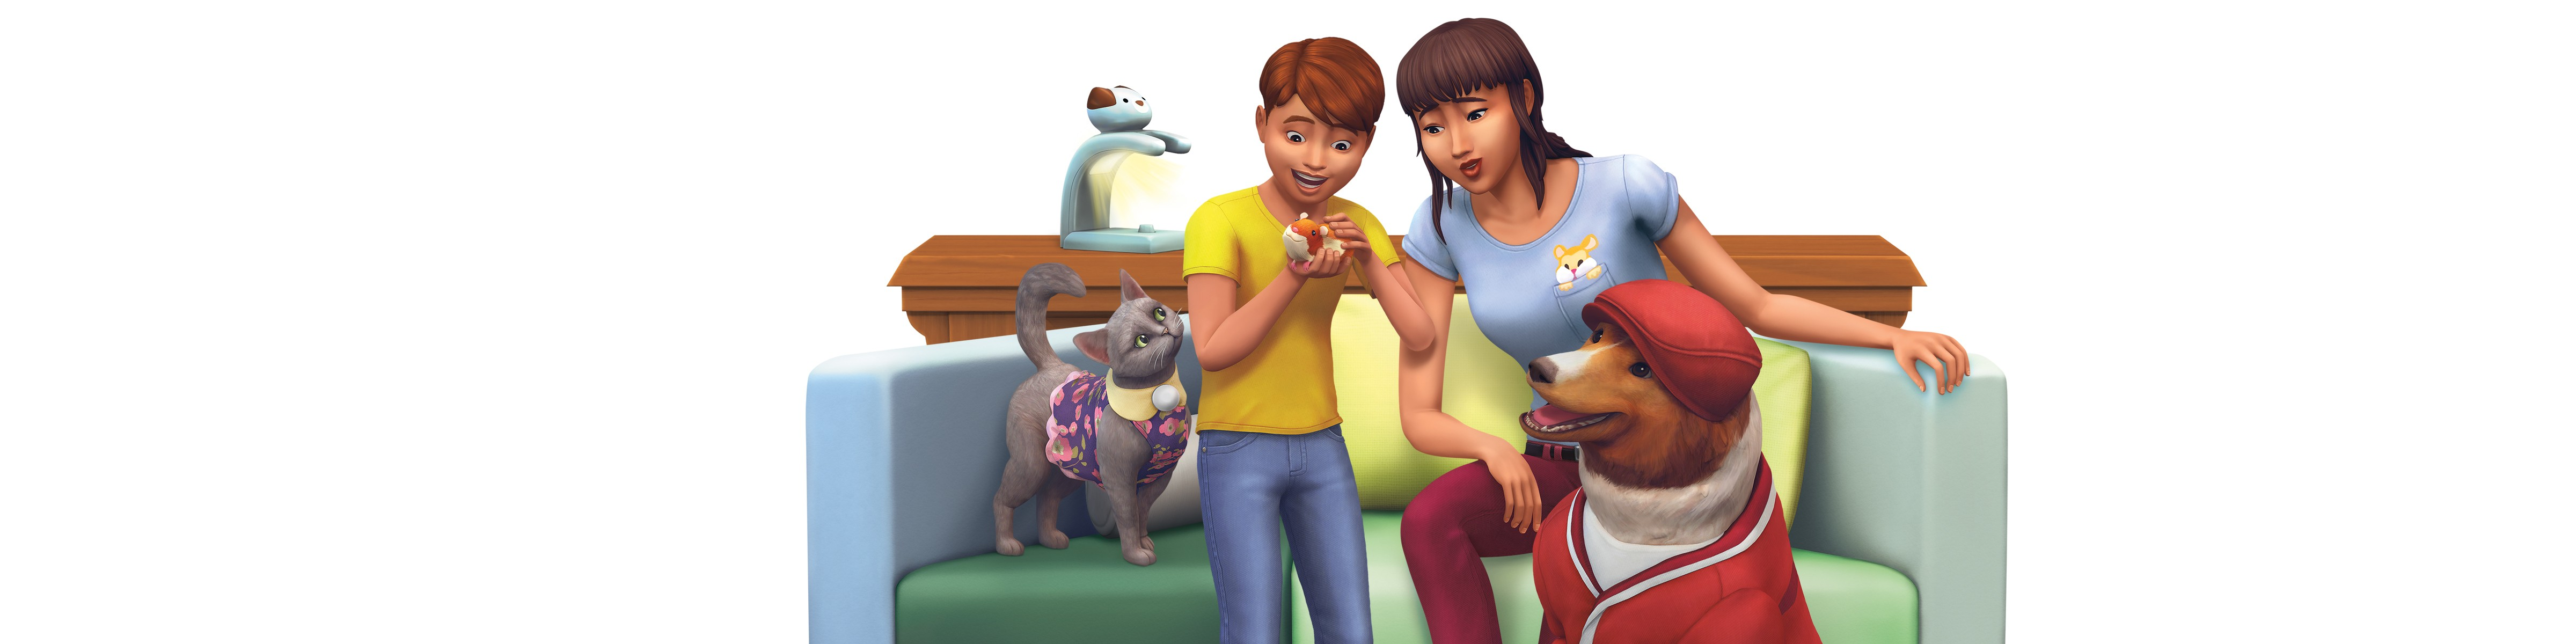 The Sims 4 My First Pet Stuff For Pcmac Origin